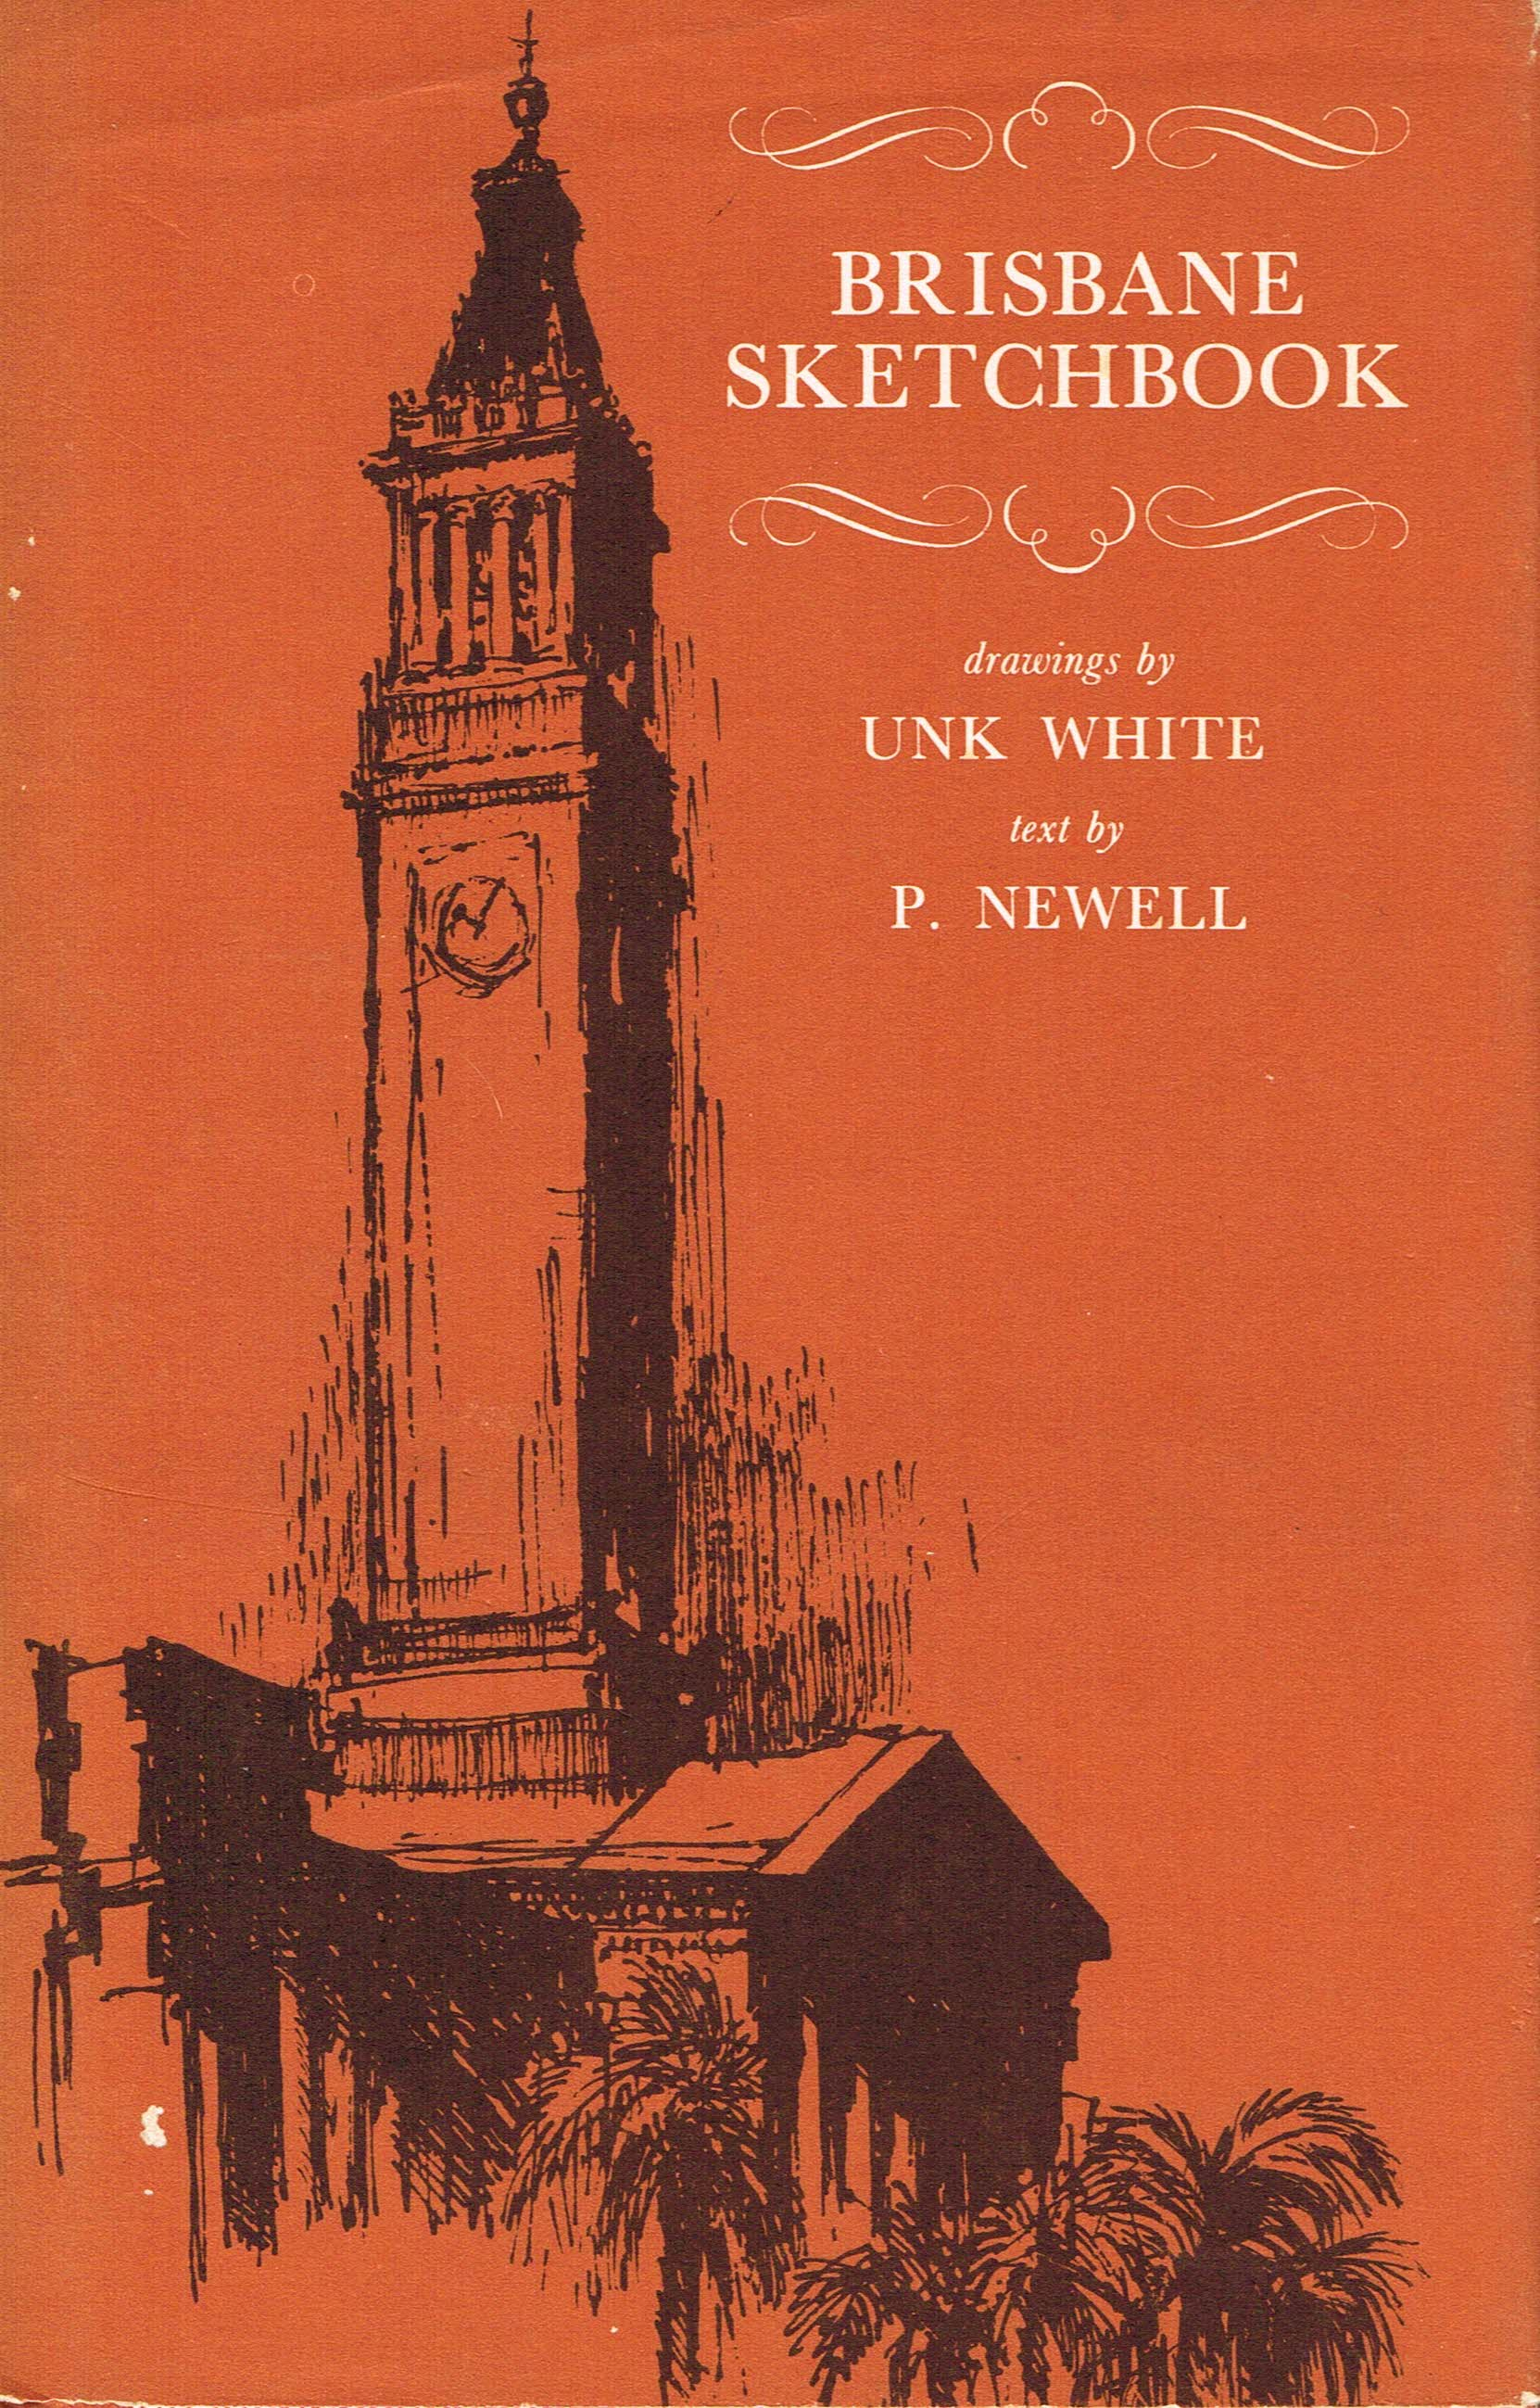 Brisbane Sketchbook  Drawings by Unk White, text by P Newell